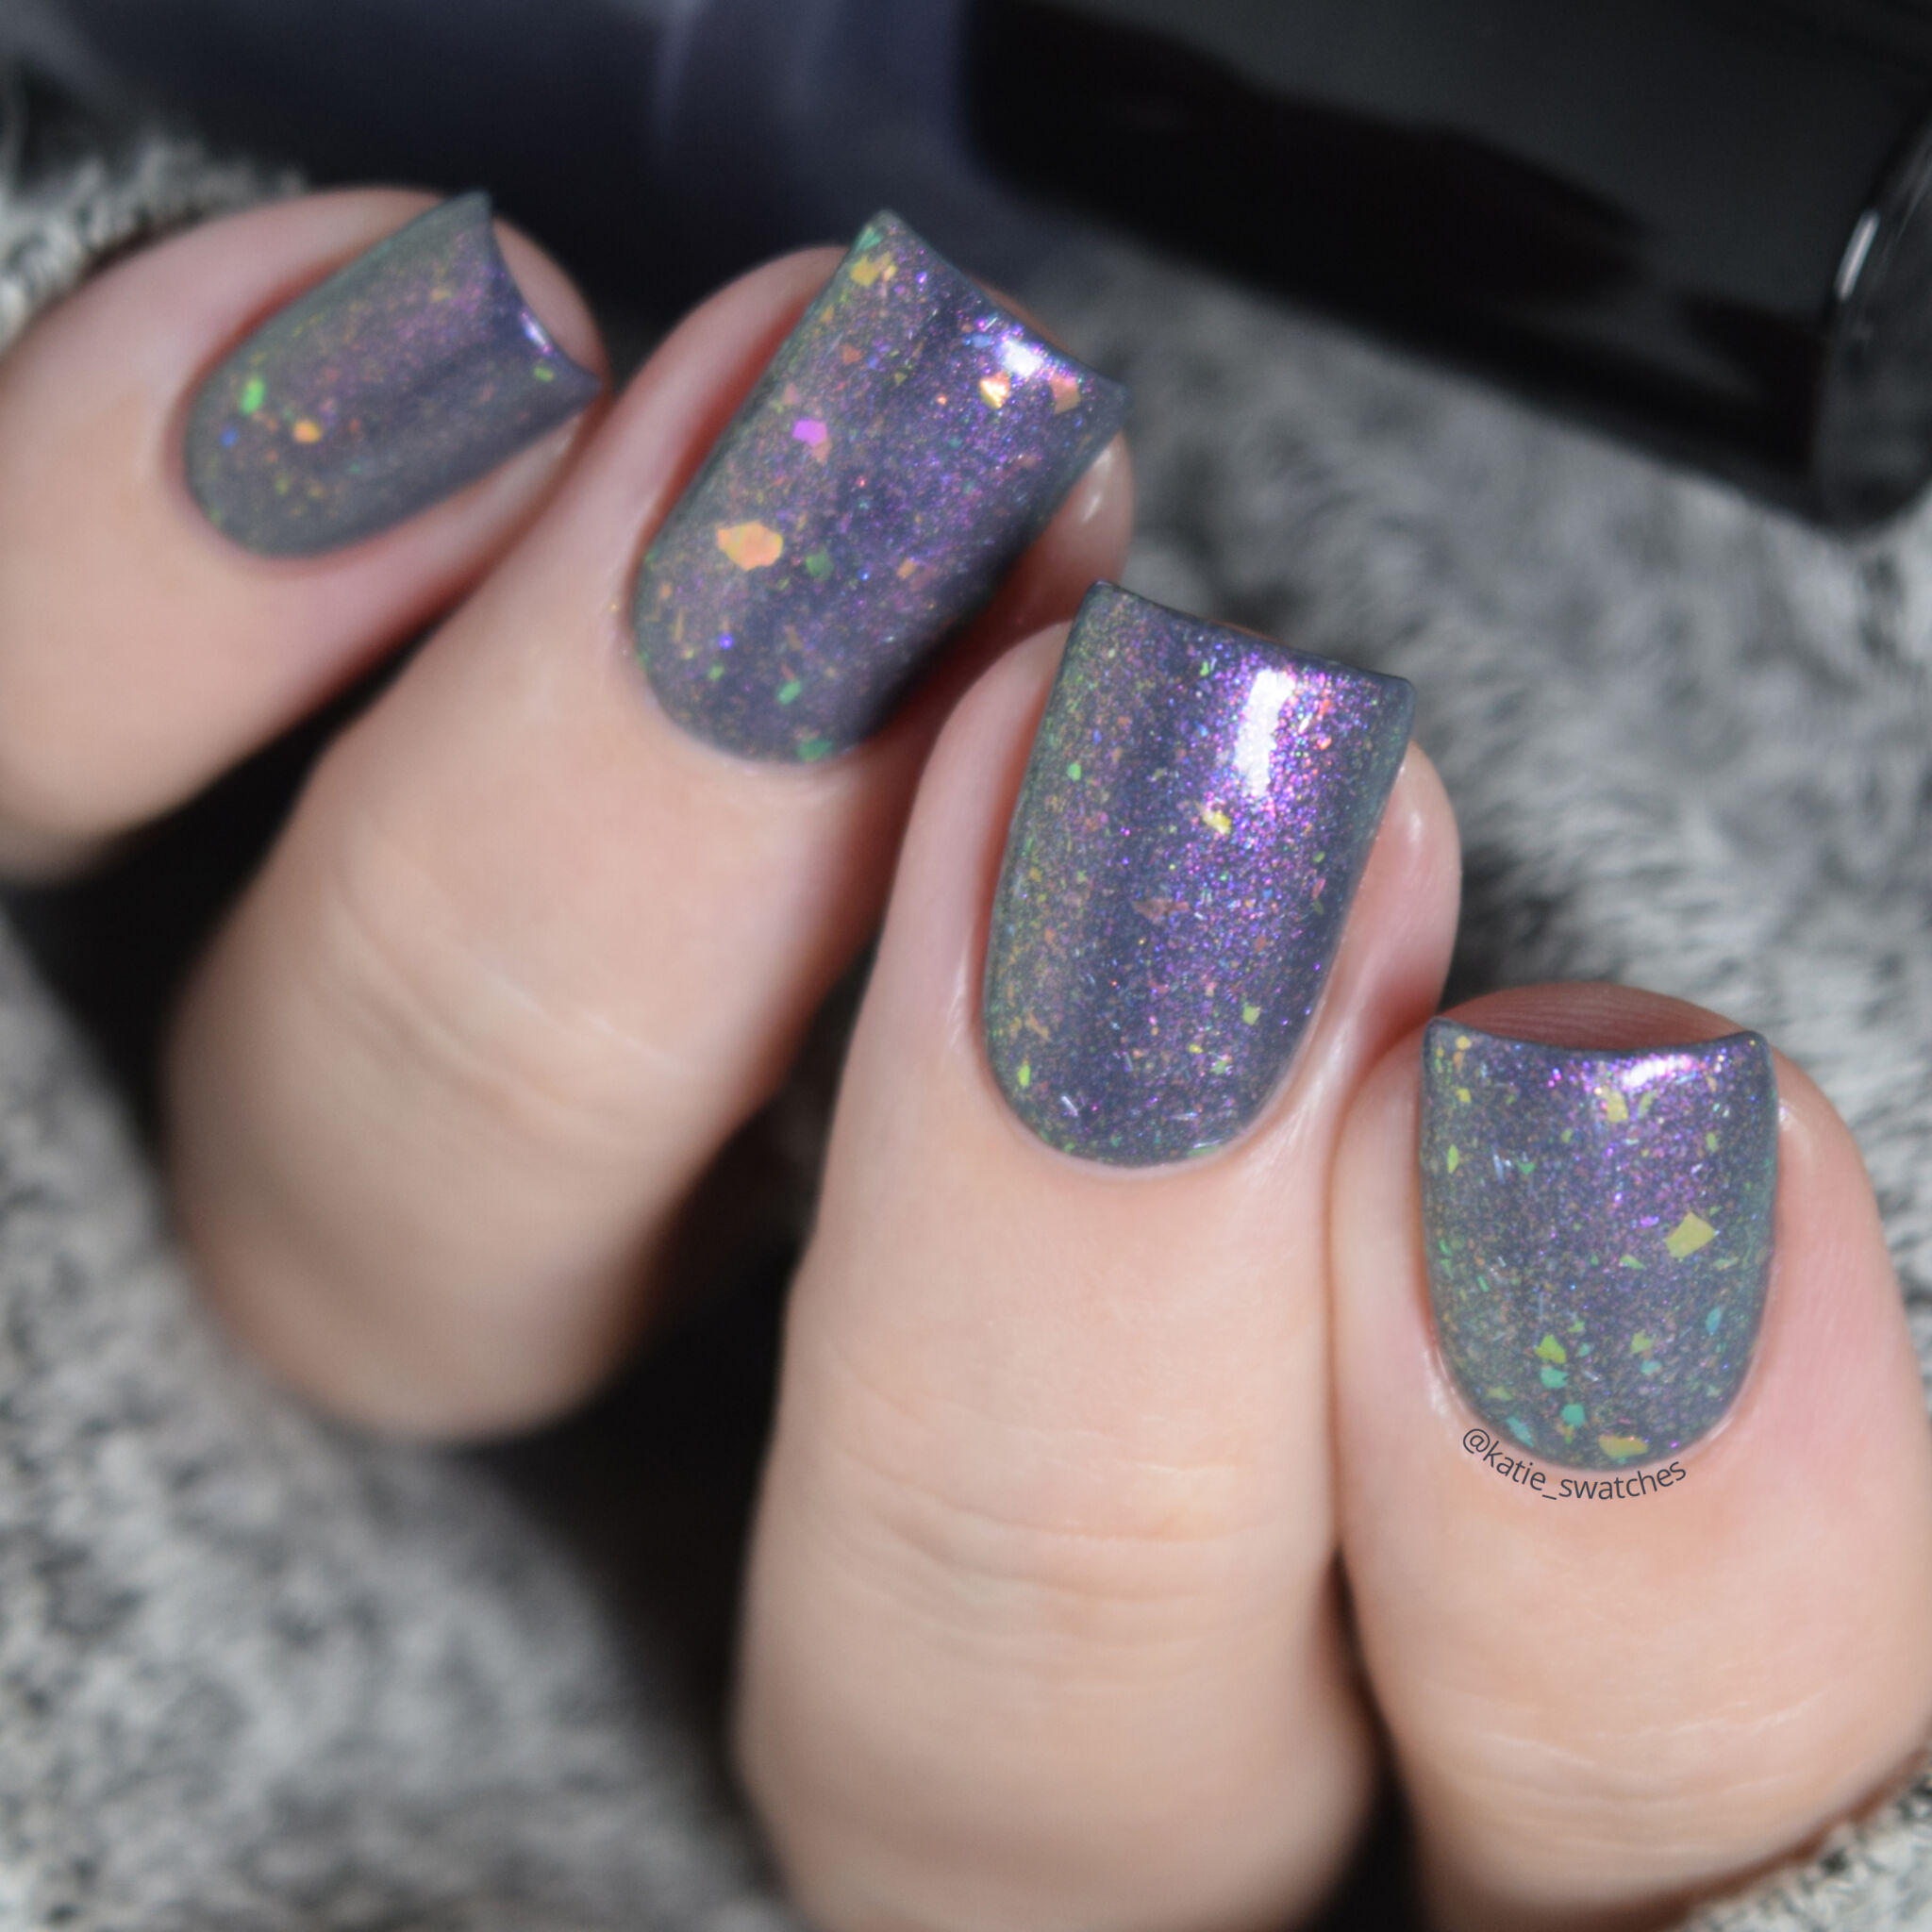 Girly Bits - Thistle While You Work shimmer flakie layered over I'm Pun-decided charcoal creme nail polish swatch